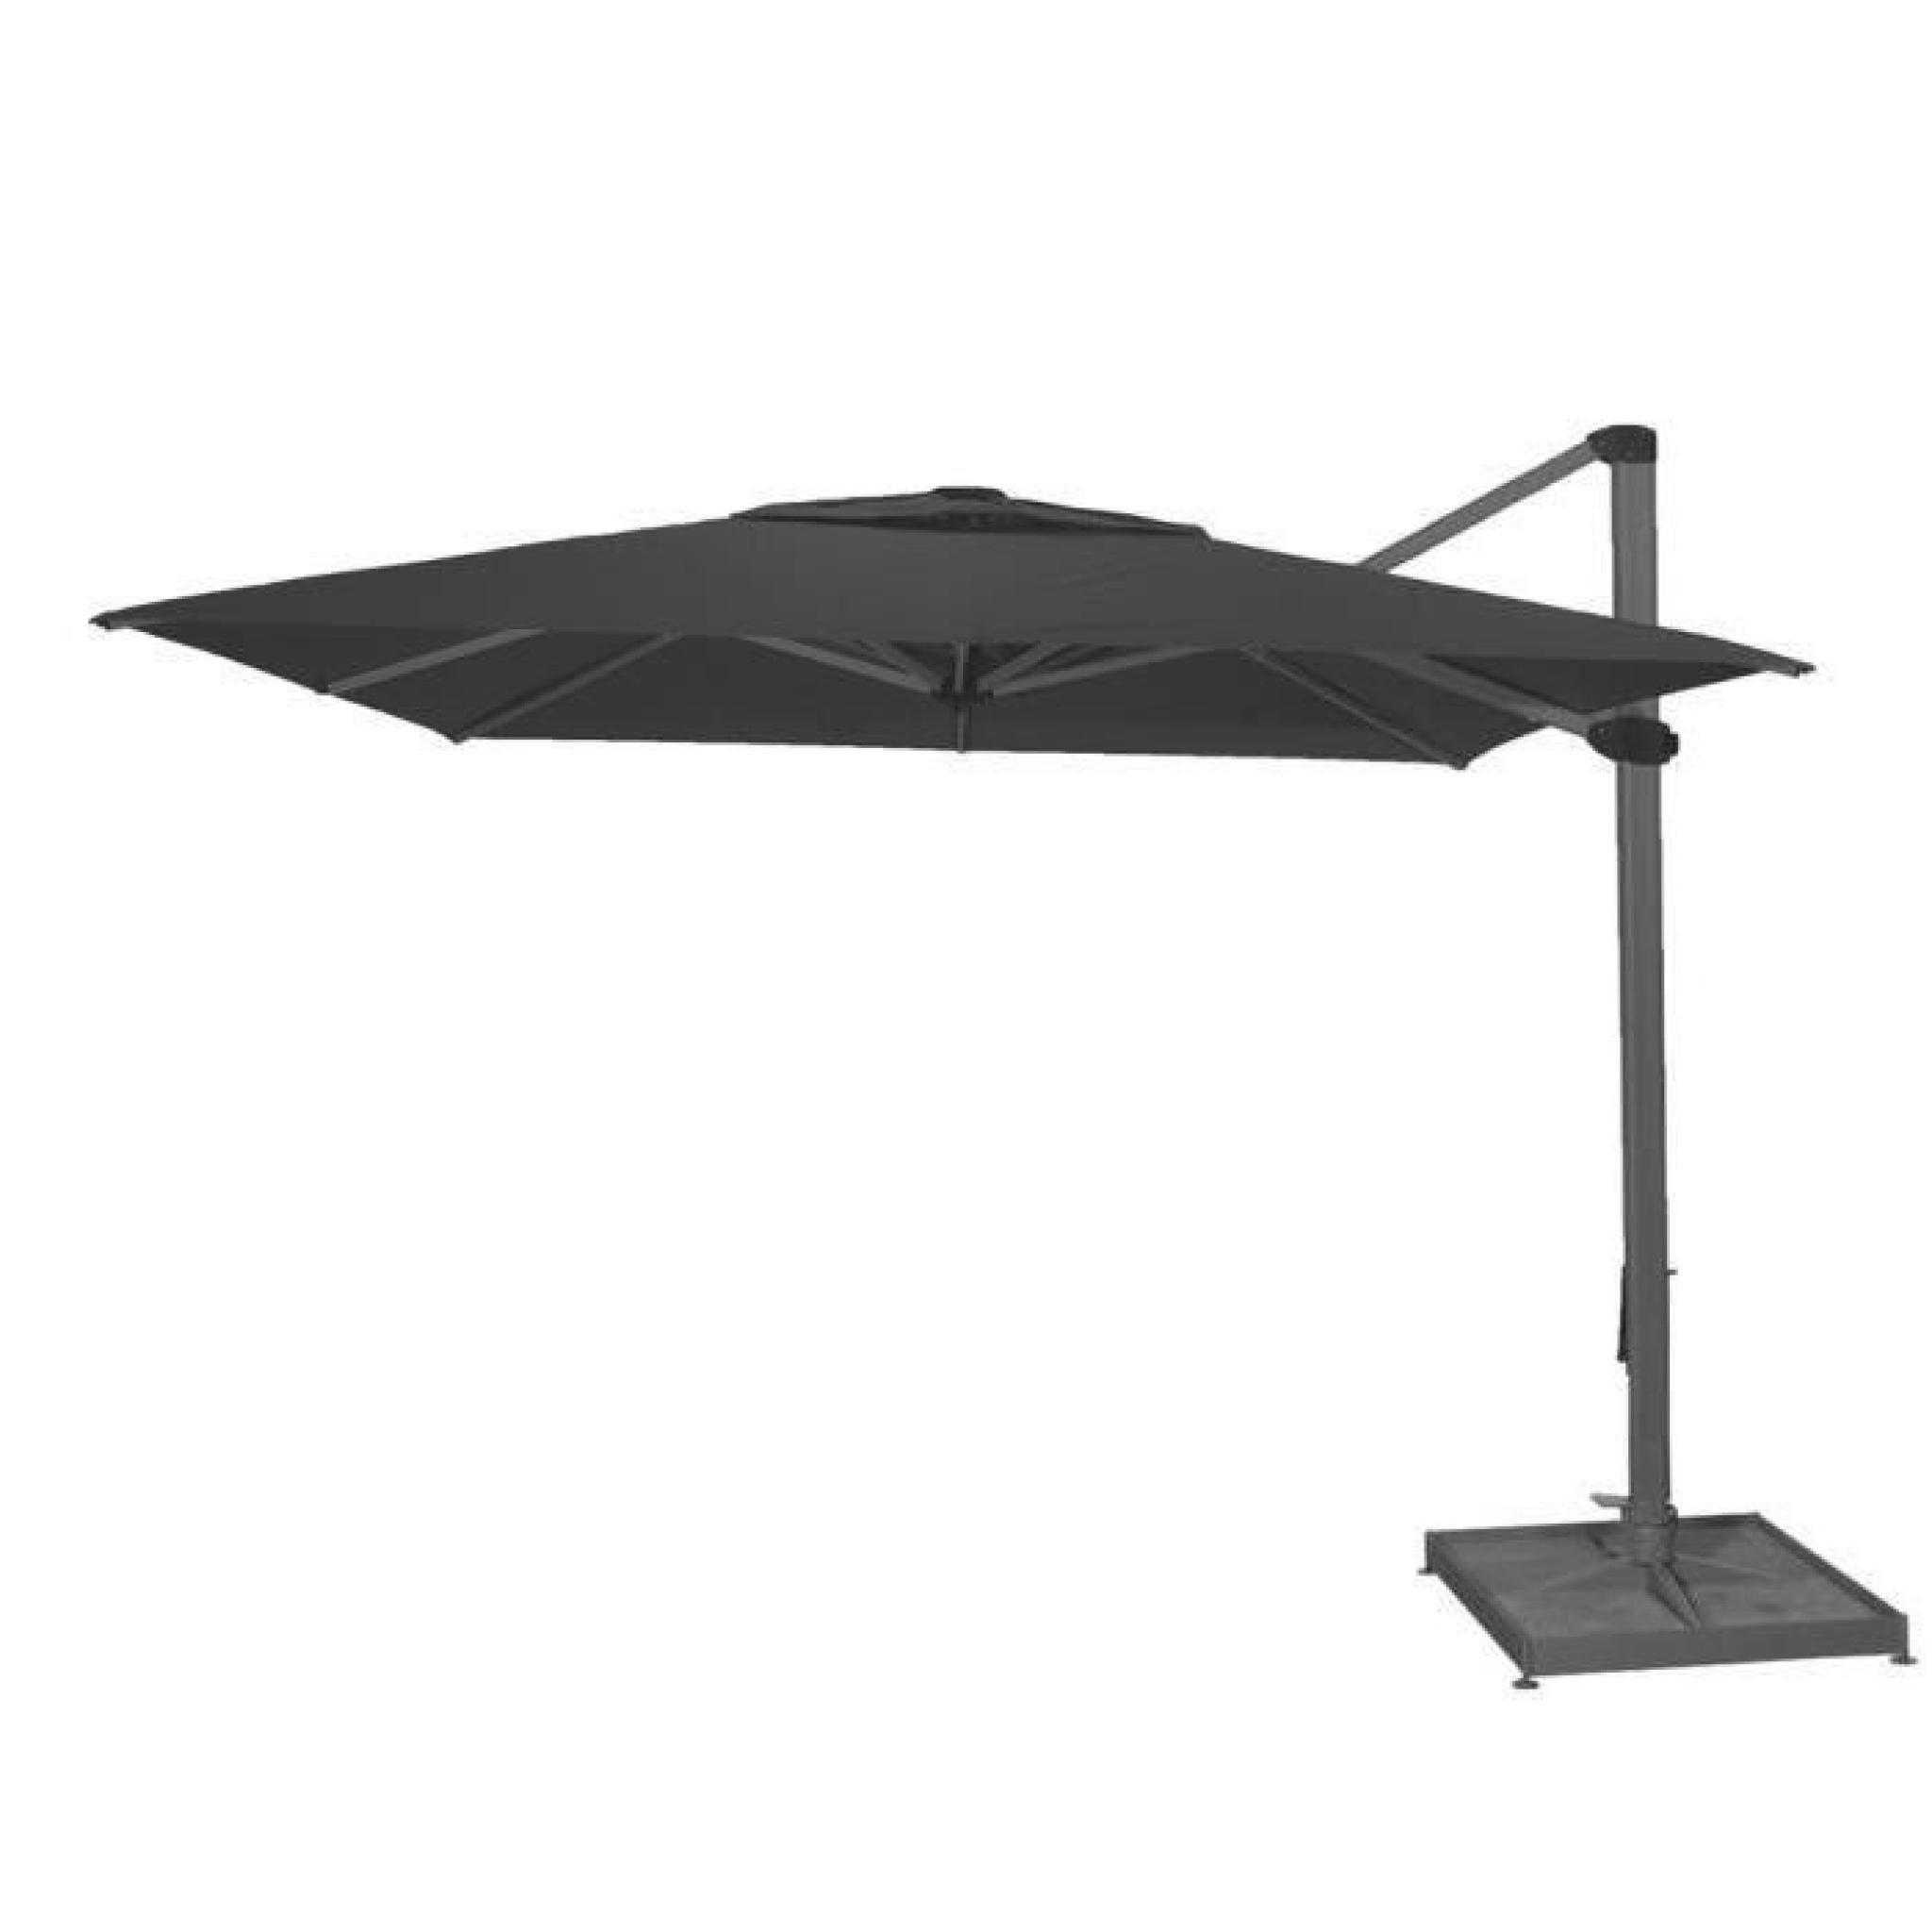 Parasol Decentre Palestro Gris Anthracite Anti Uv Inclinable Carre